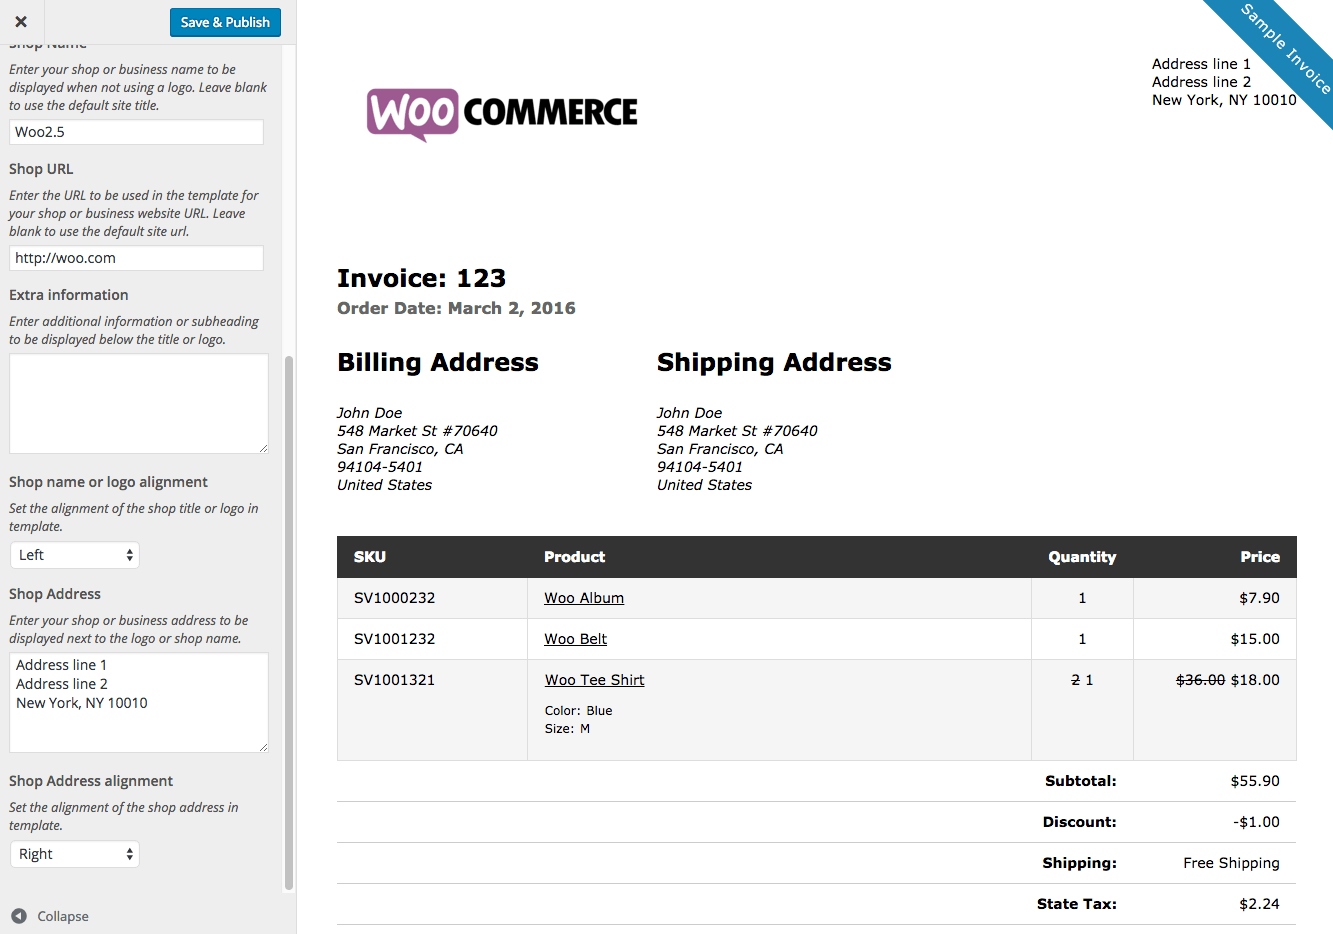 Coolmathgamesus  Terrific Woocommerce Print Invoices Amp Packing Lists  Woocommerce Docs With Exquisite Woocommerce Print Invoices  Packing Lists Customizer With Cool Invoice  Way Match Also No Gst Invoice In Addition Customs Invoice Form And Php Invoice System As Well As Google Invoices Templates Free Additionally Porsche Macan Invoice From Docswoocommercecom With Coolmathgamesus  Exquisite Woocommerce Print Invoices Amp Packing Lists  Woocommerce Docs With Cool Woocommerce Print Invoices  Packing Lists Customizer And Terrific Invoice  Way Match Also No Gst Invoice In Addition Customs Invoice Form From Docswoocommercecom